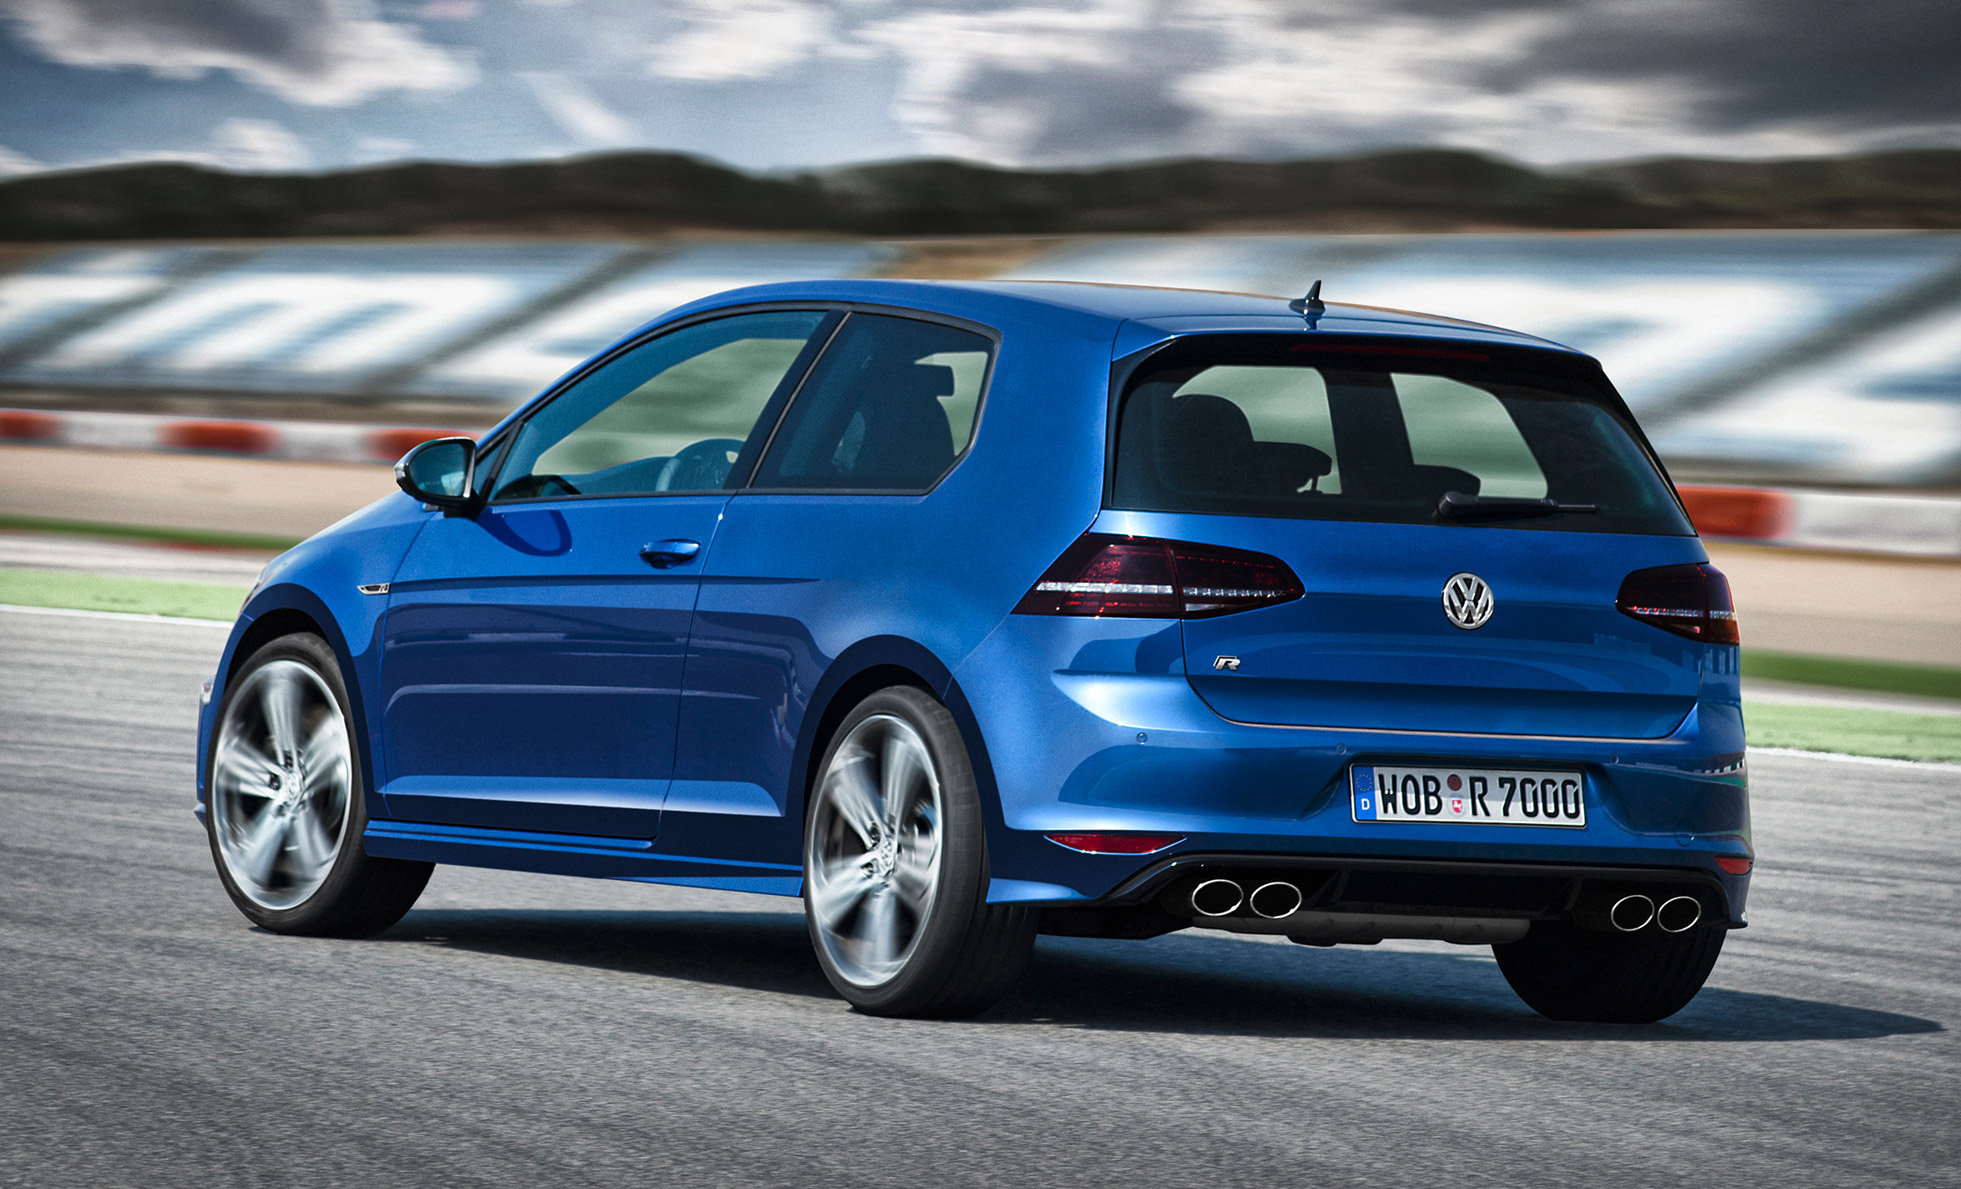 volkswagen-golf-7-r-first-drive-vwvortex-007